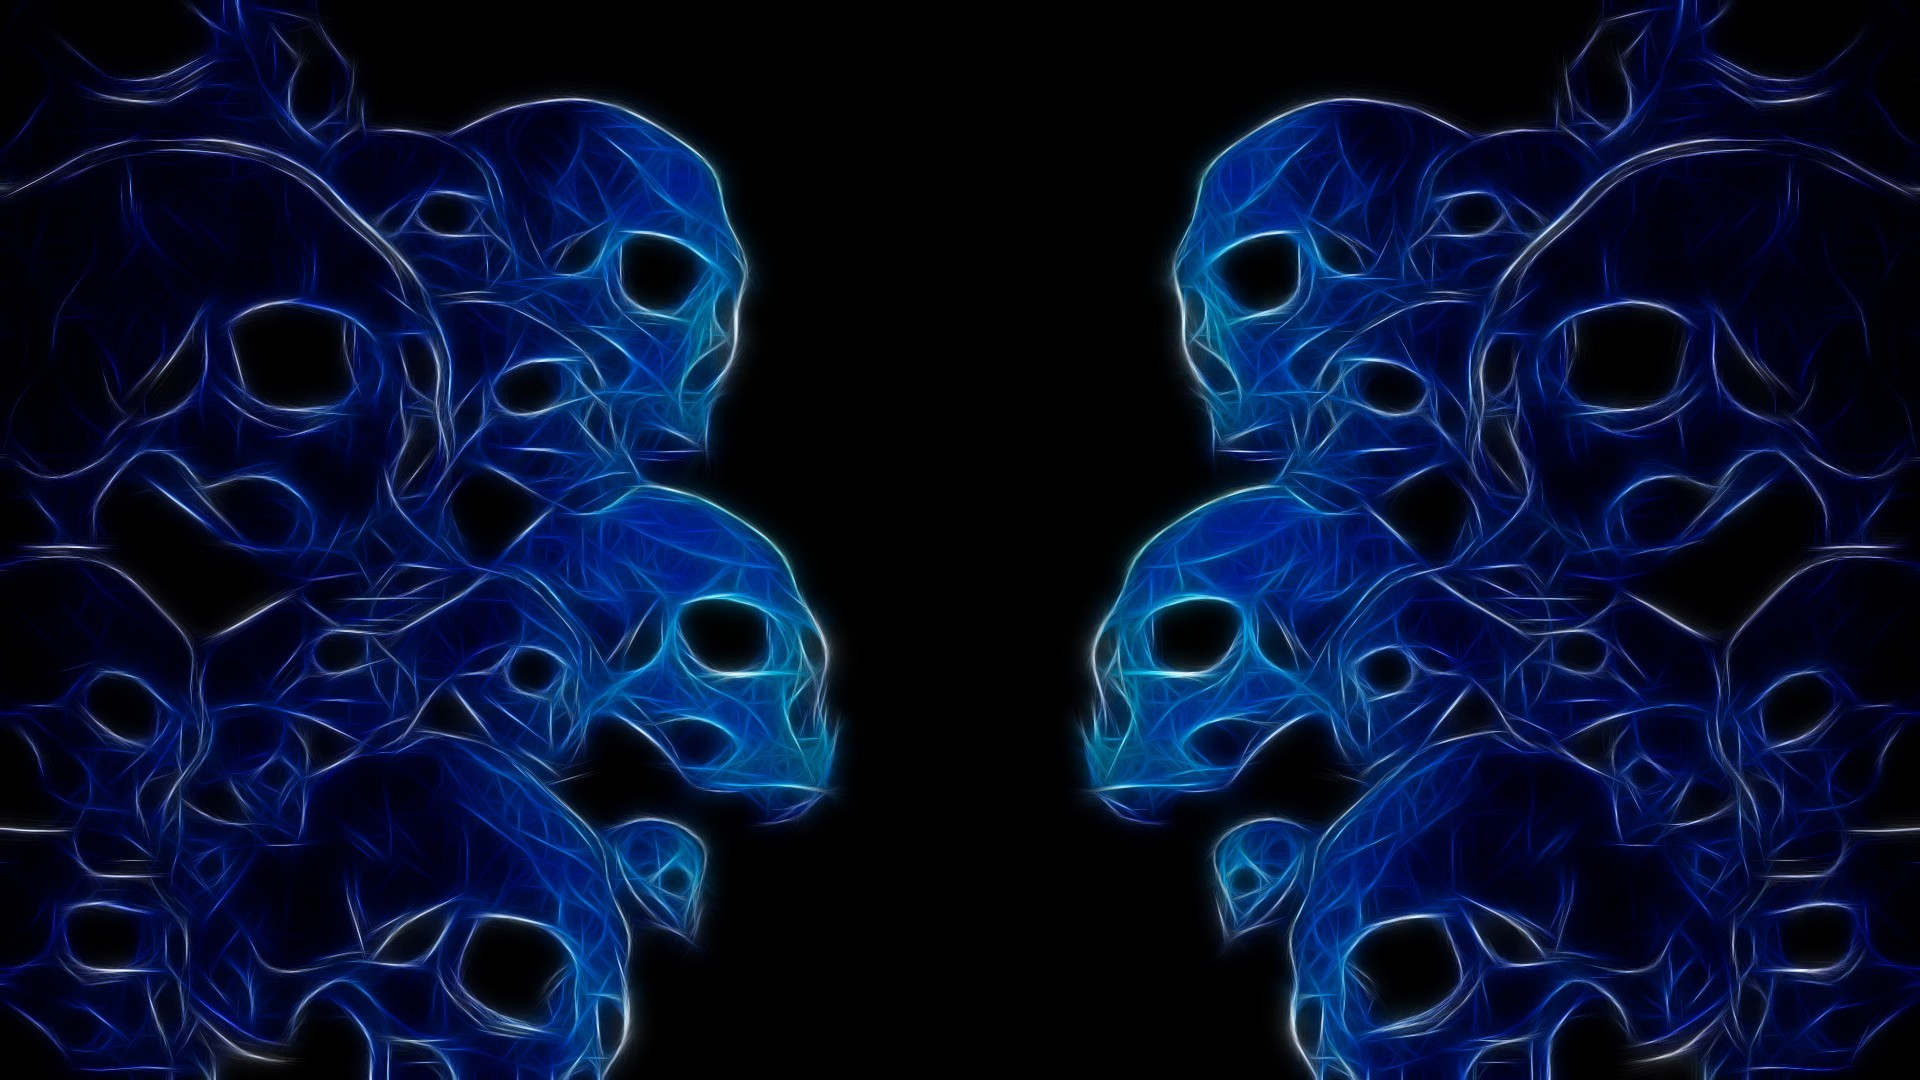 Cool Flaming Skull Wallpapers 21 Best Flaming Skulls Images On